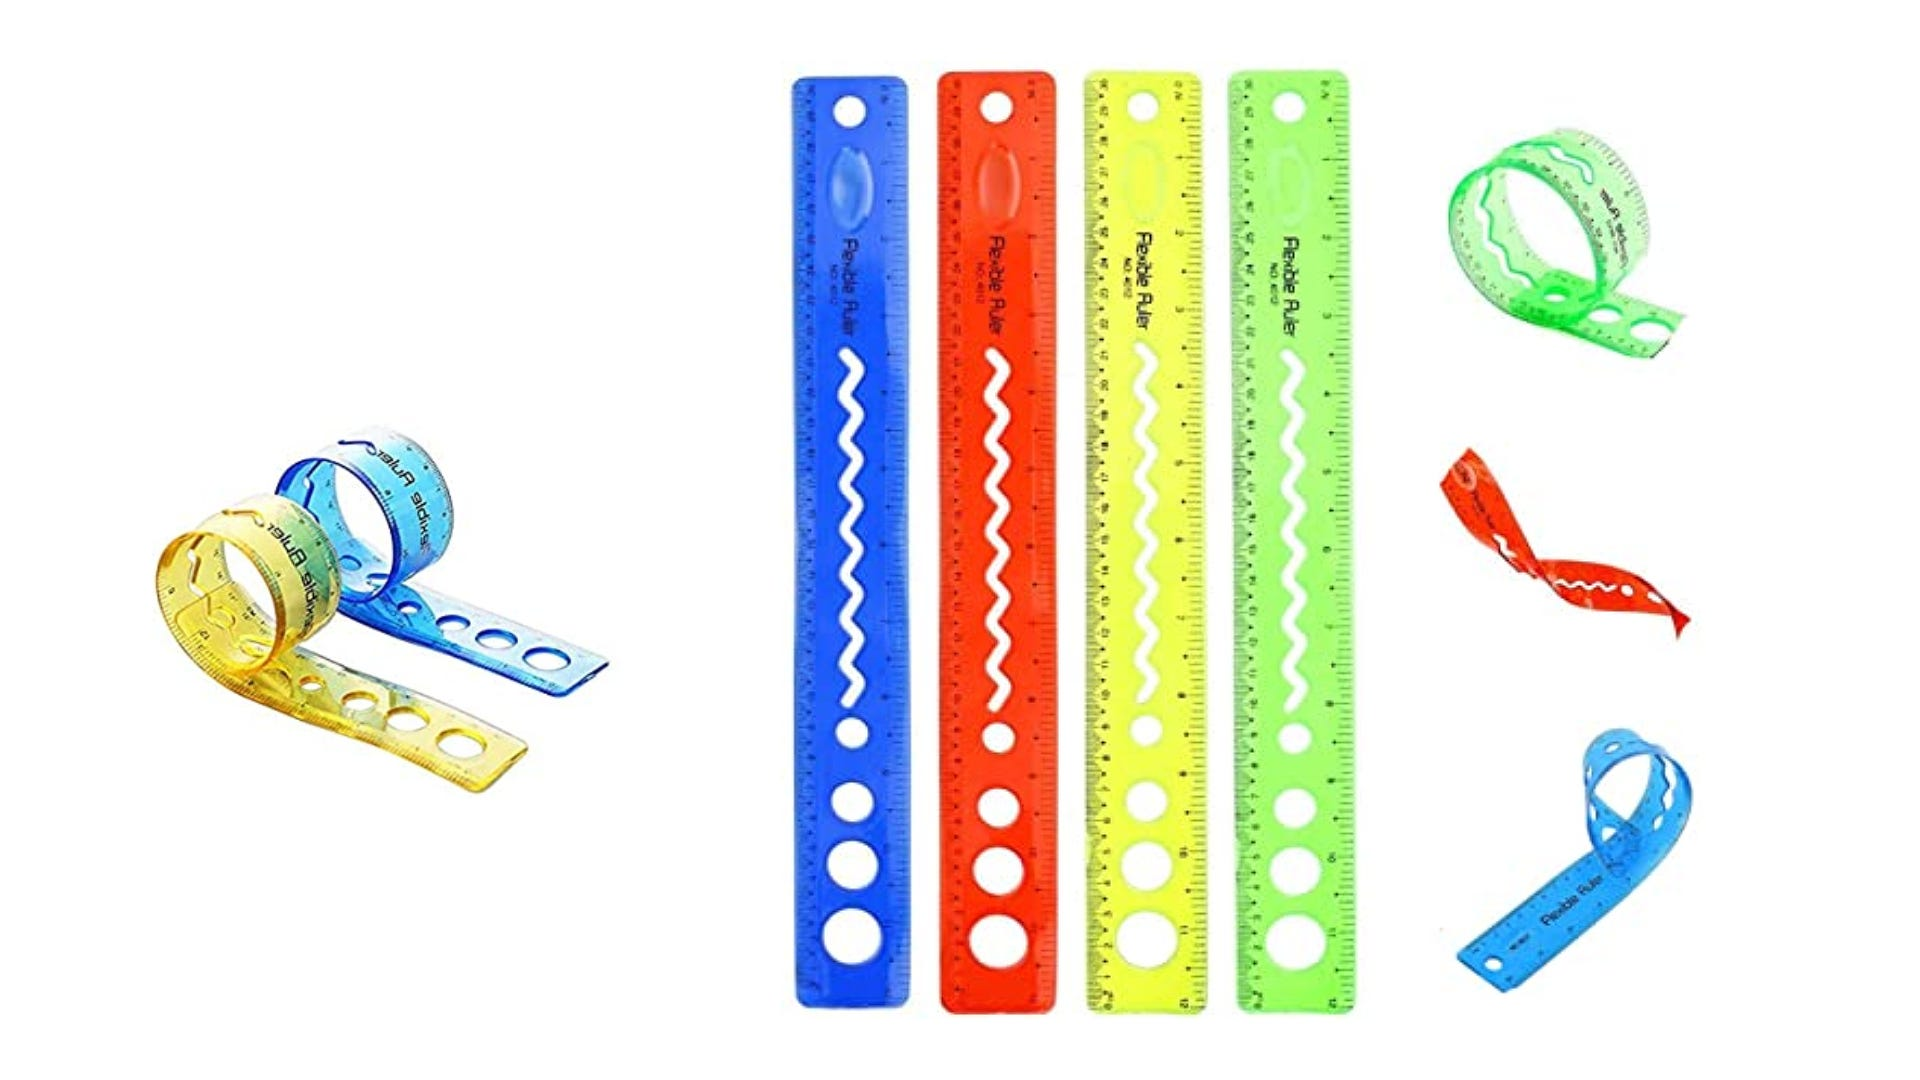 fun colored bendable rubber rules displayed straight and in various bends